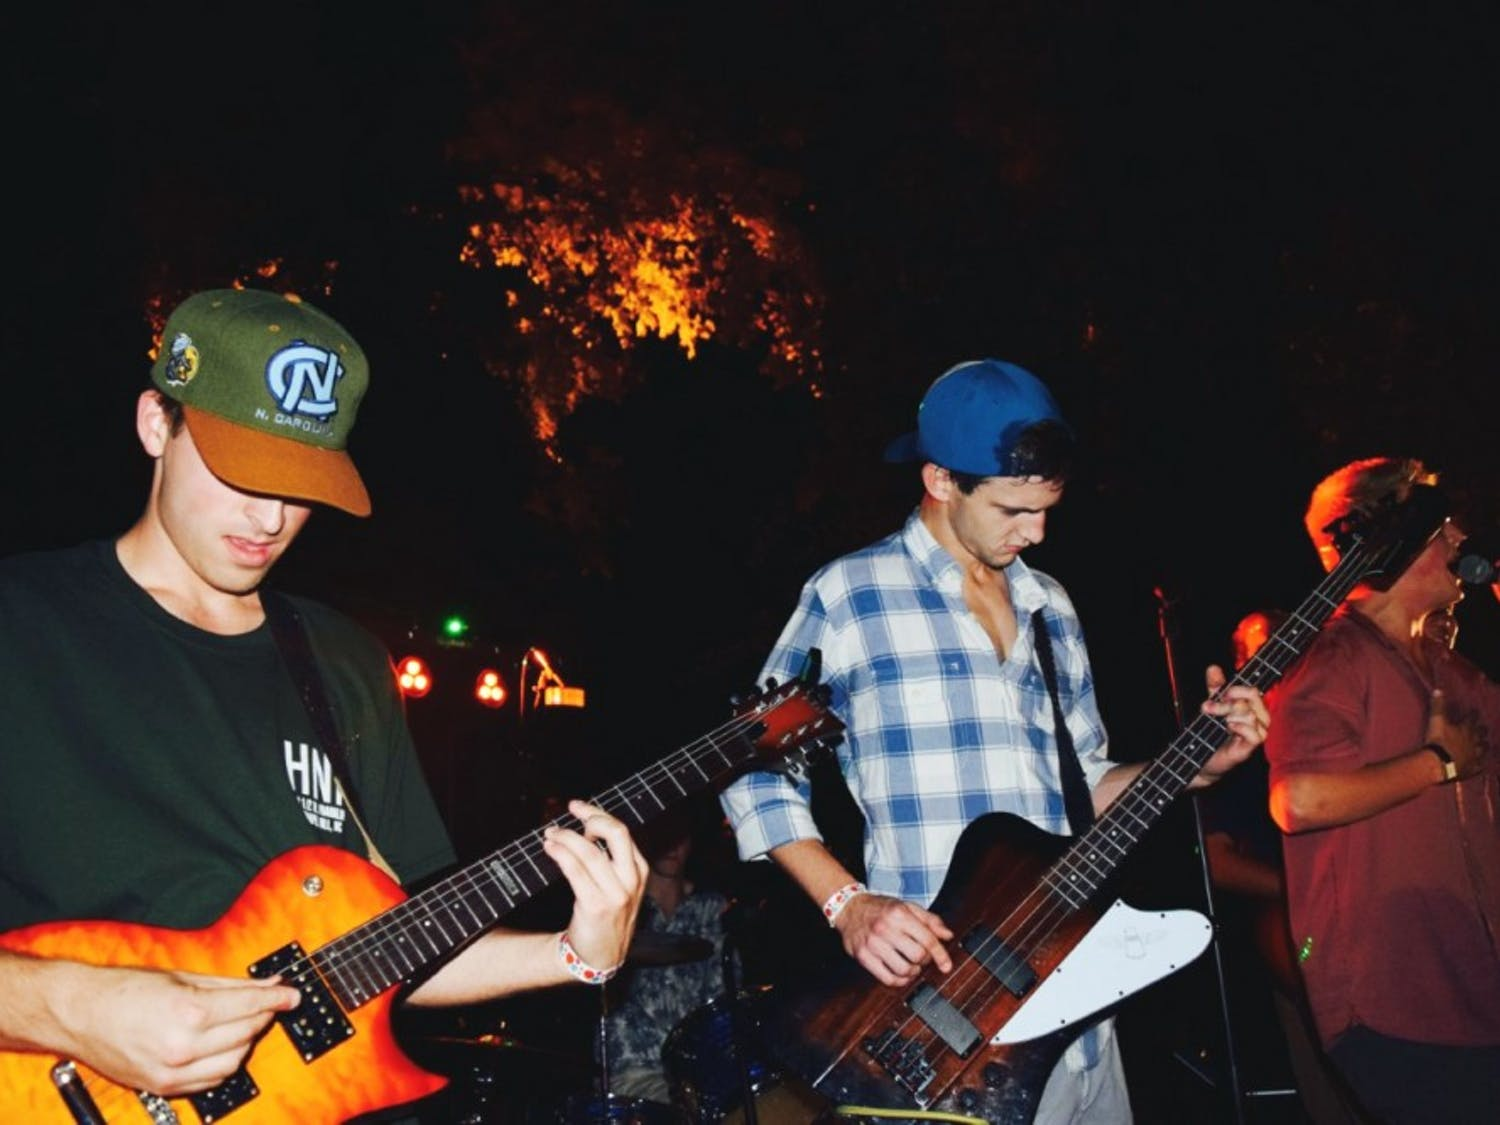 The band 'Left on Franklin' was founded in spring 2015 by six Beta Theta Pi fraternity members and students and will be releasing a four track EP on Aug. 1 (courtesy of Sallie DuBose).